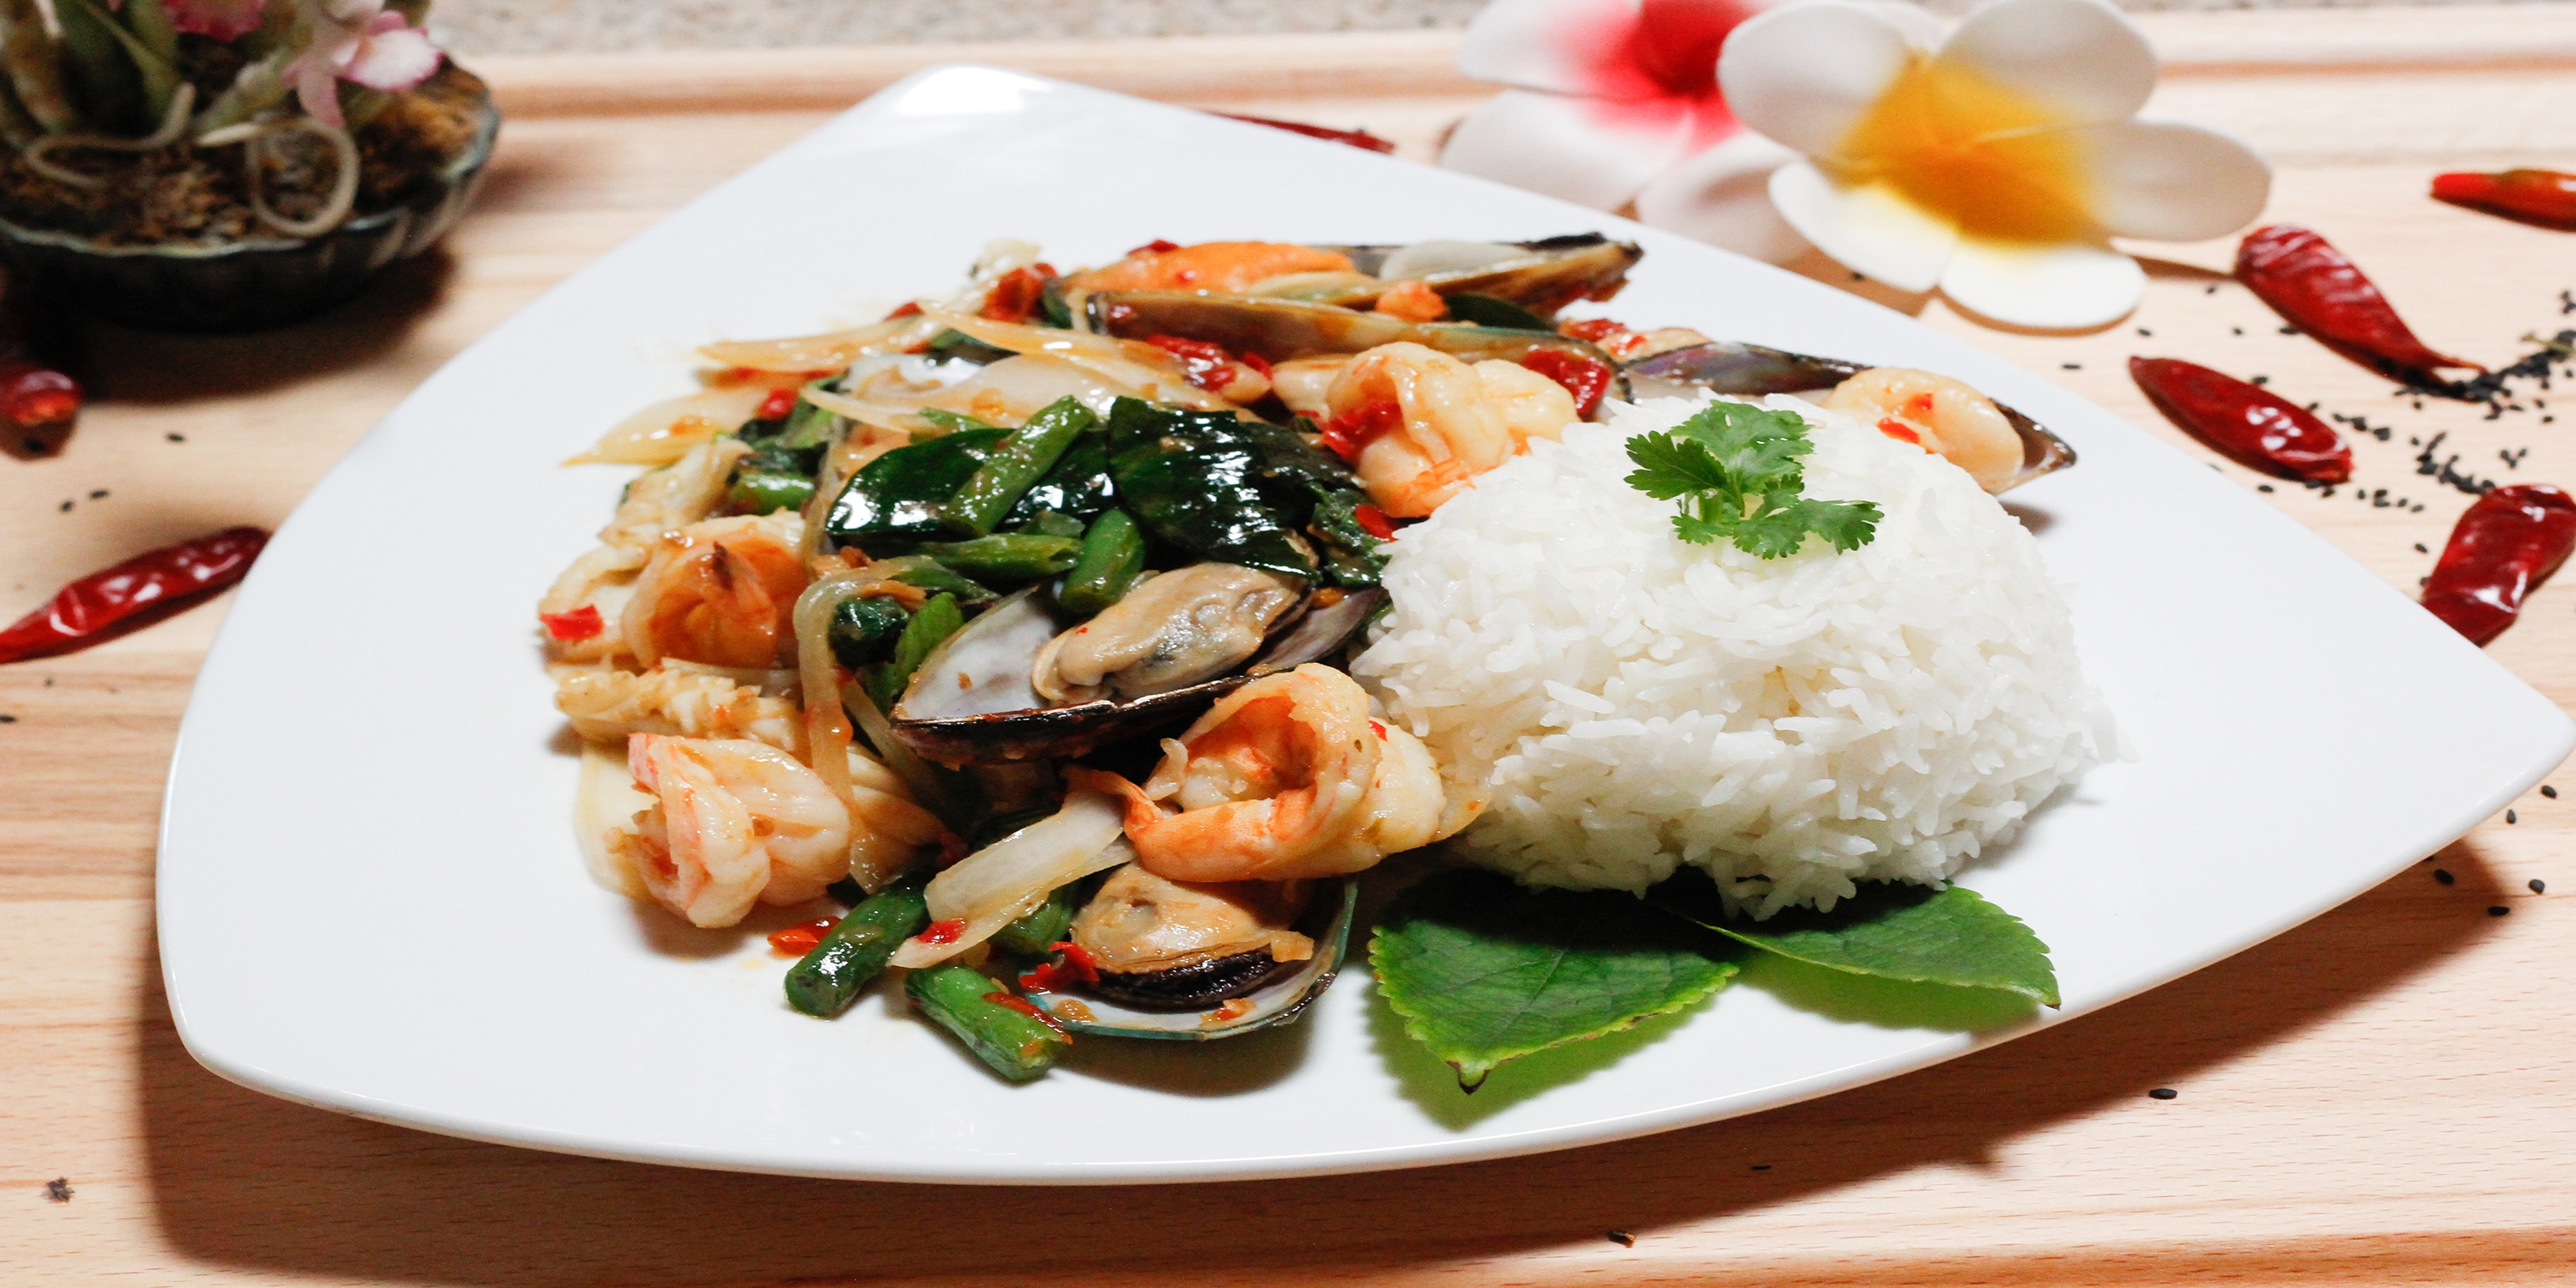 Spicy Seafood with thai basil leaf